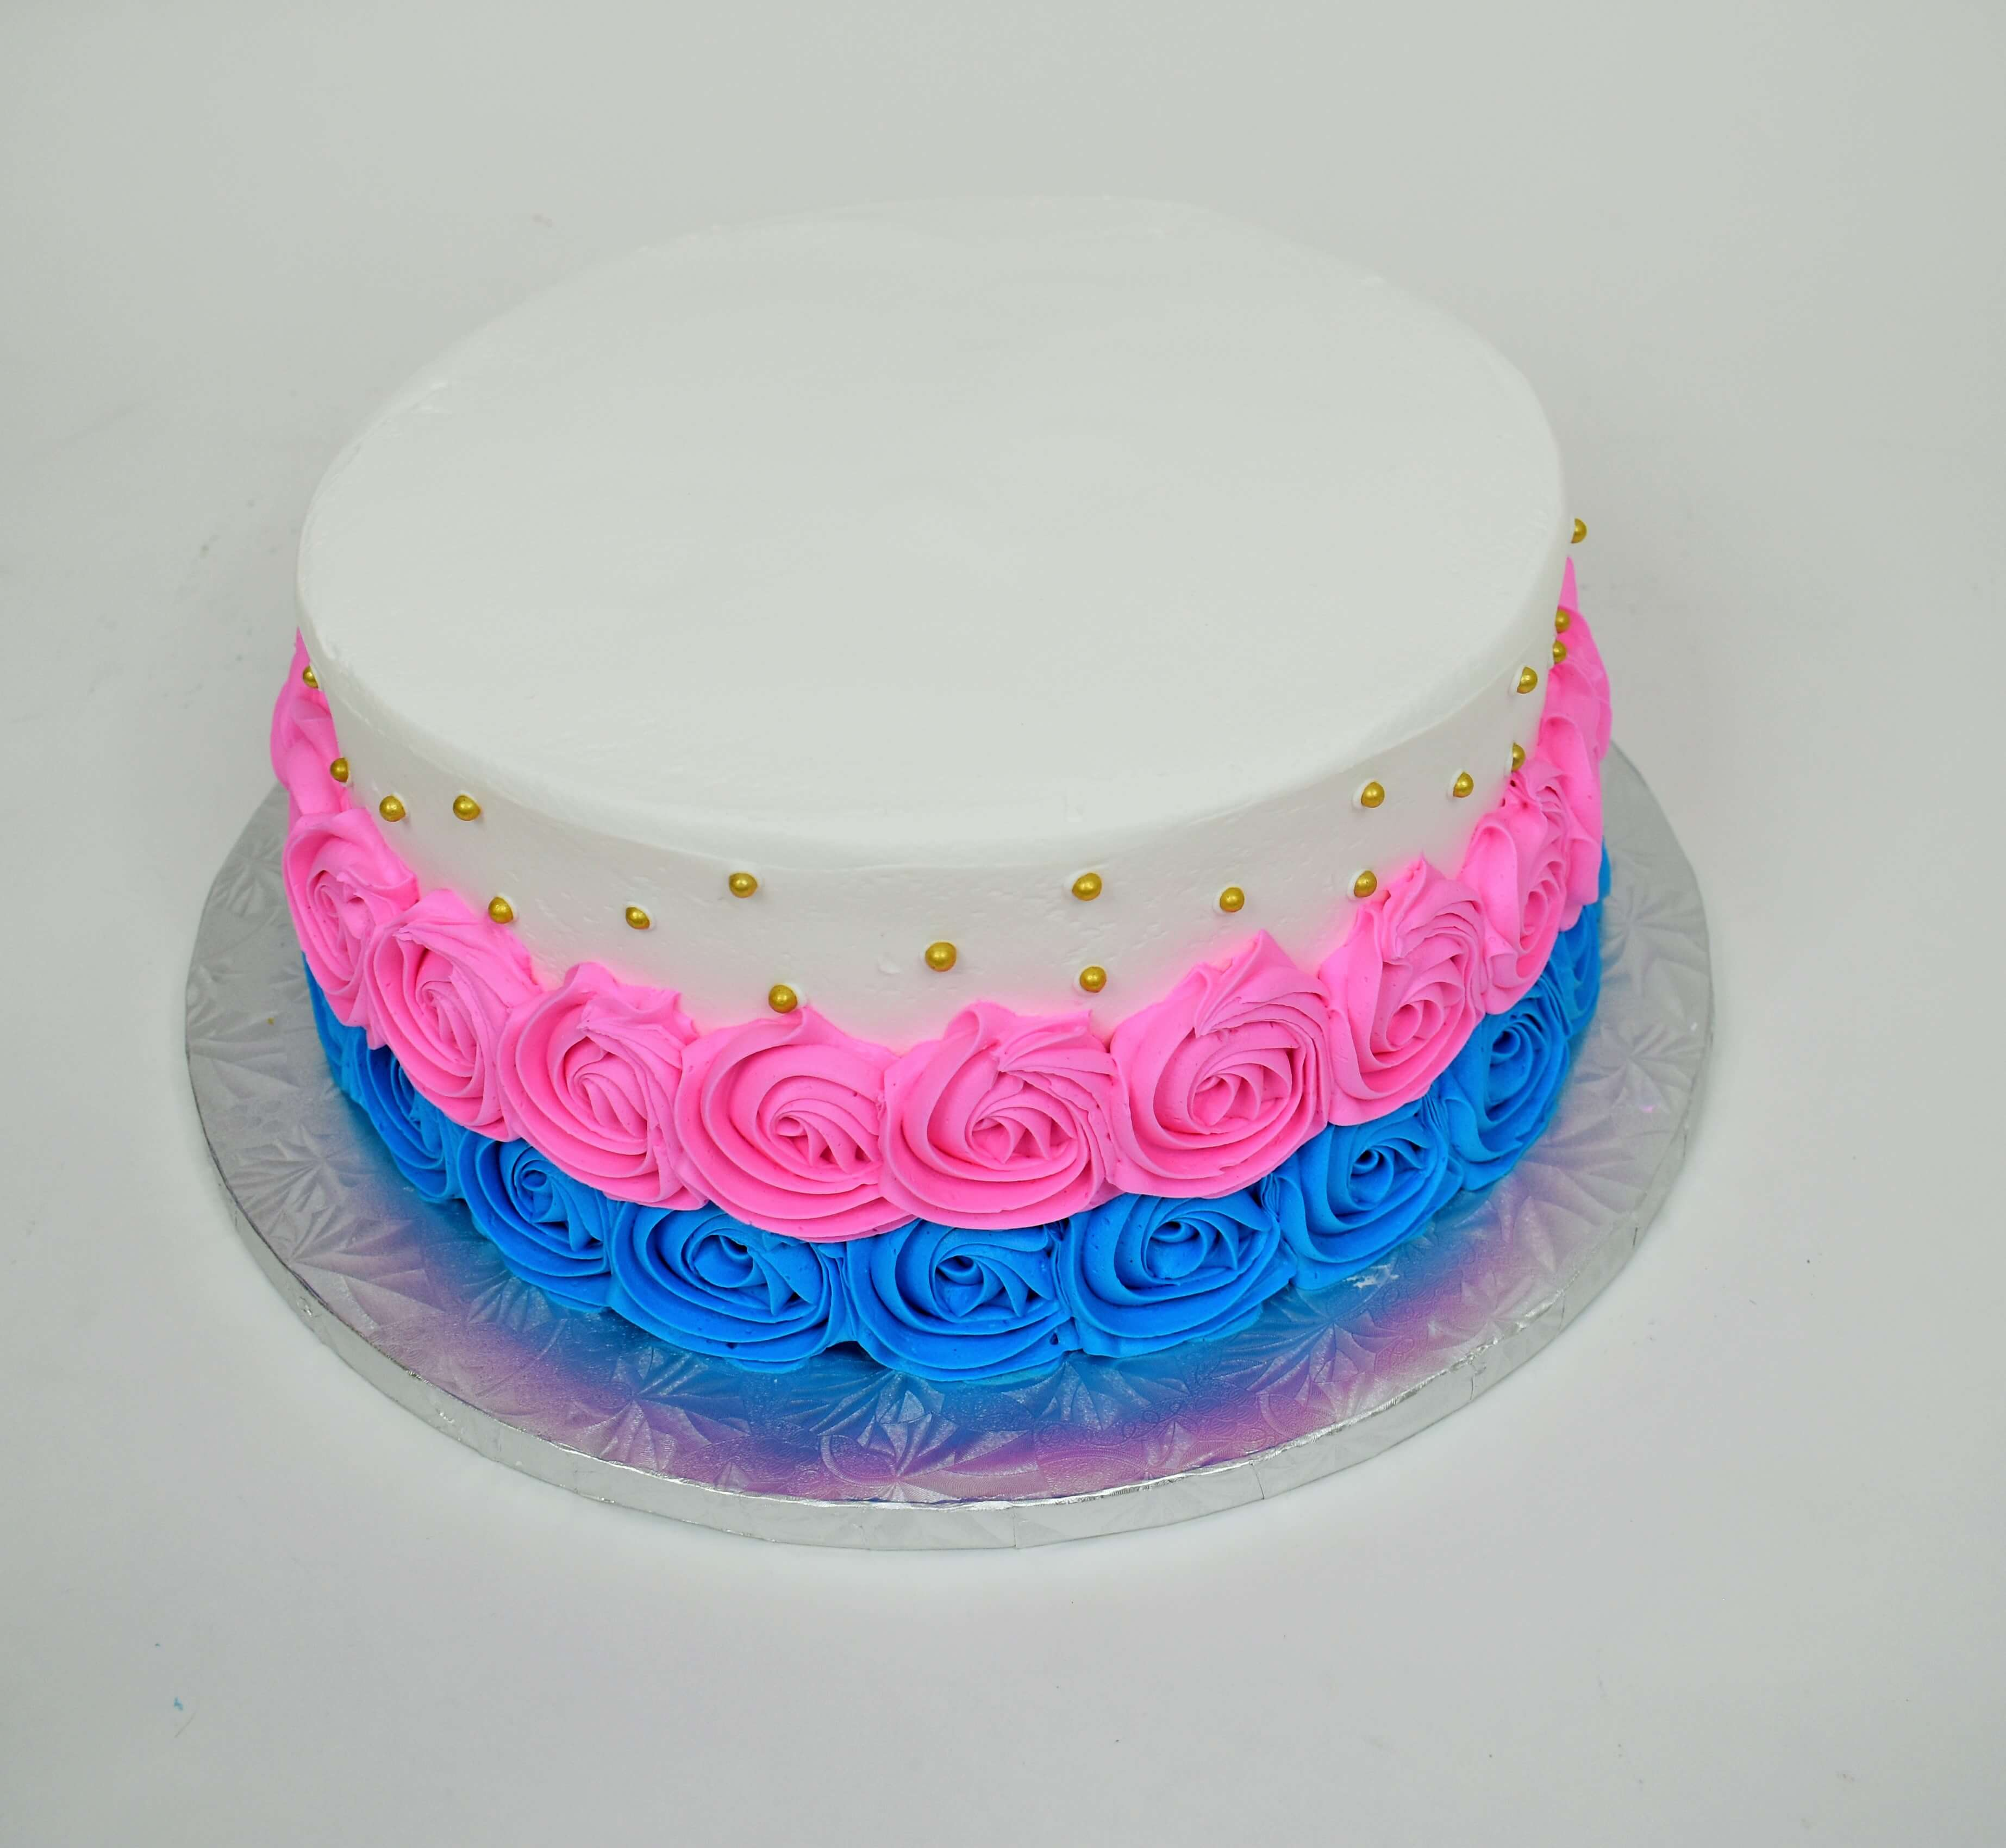 McArthur's Bakery Custom Cake with Pink and Blue Rosettes